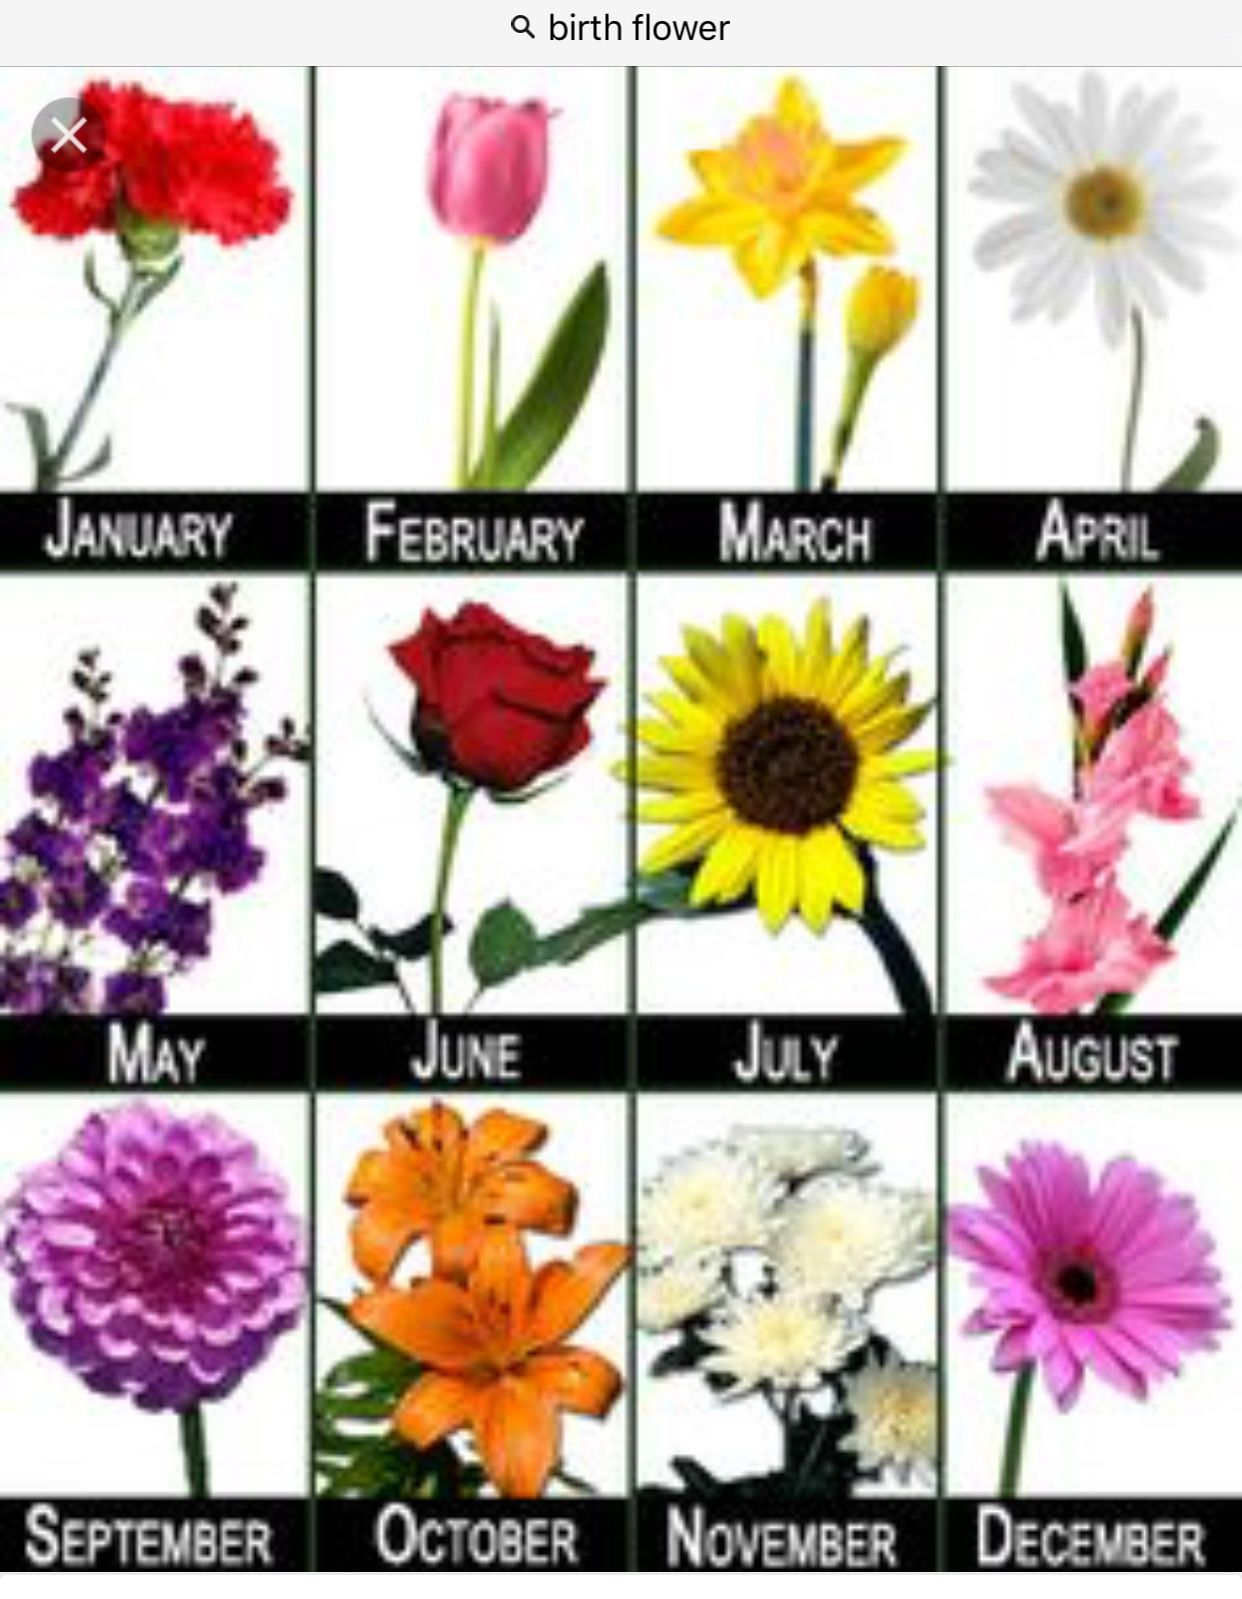 Pin by Yenderys Hilario on 4 MOMS Birth month flowers